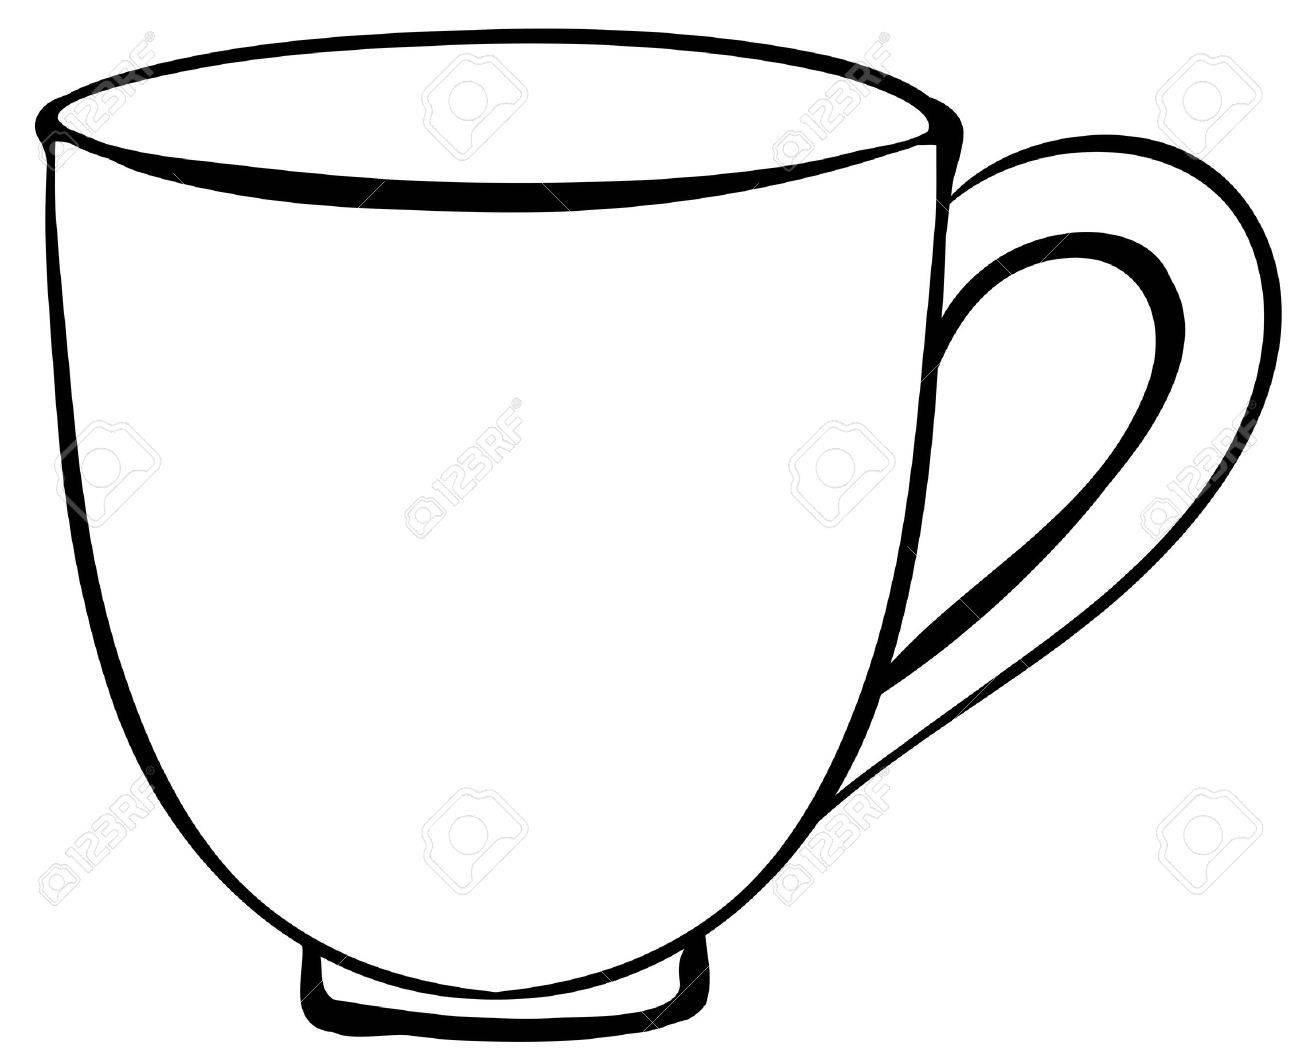 Closeup Plain Design Of Coffee Cup Royalty Free Cliparts.